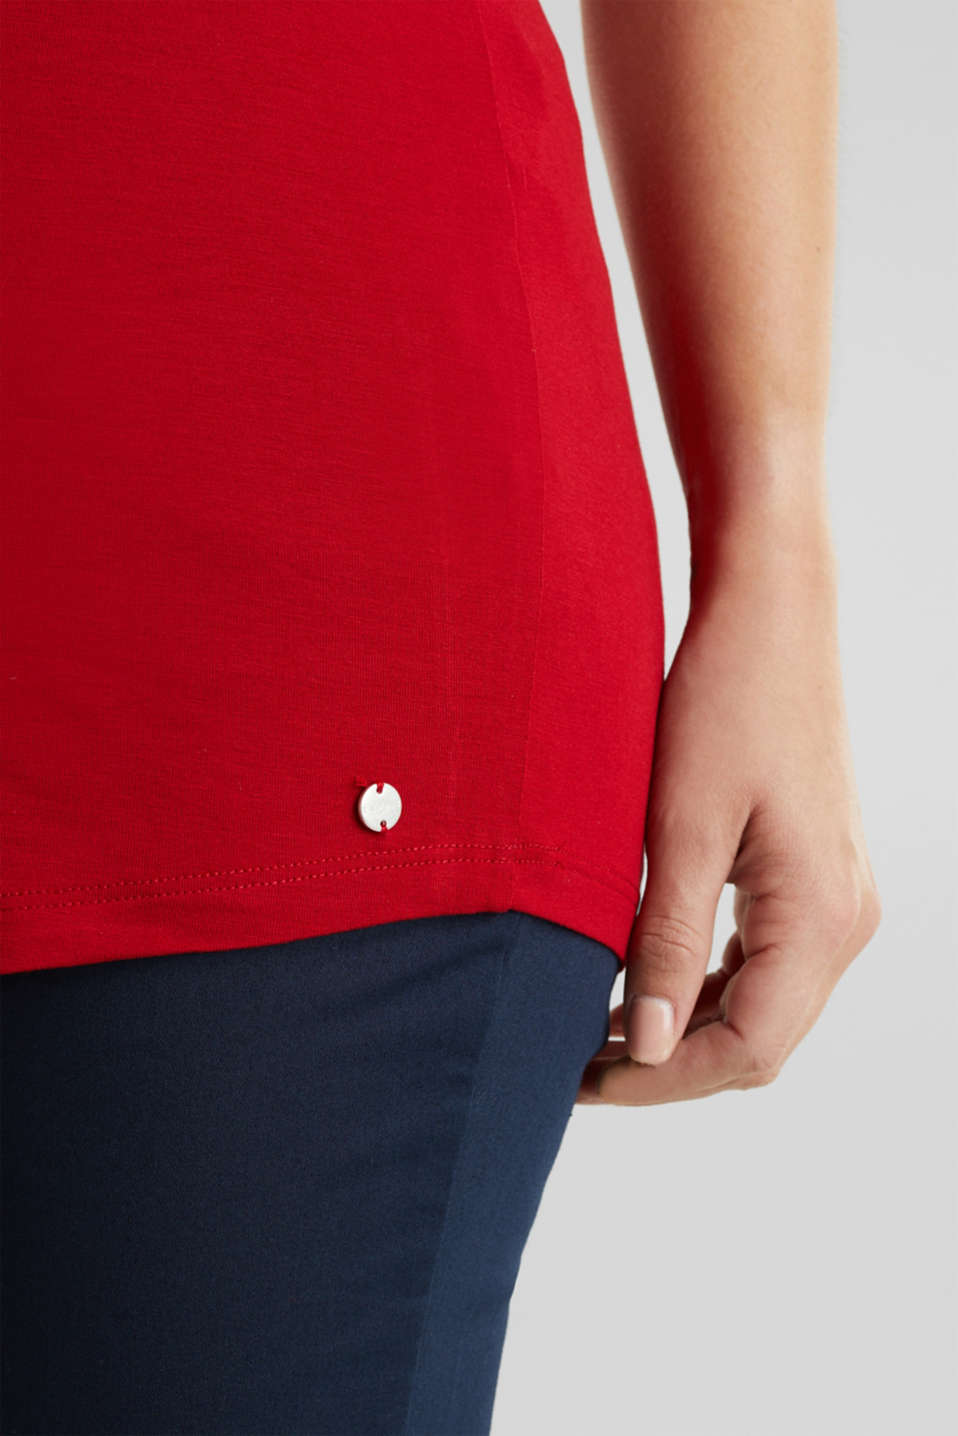 Nursing top made of stretch jersey with a shawl collar, LCRED, detail image number 6